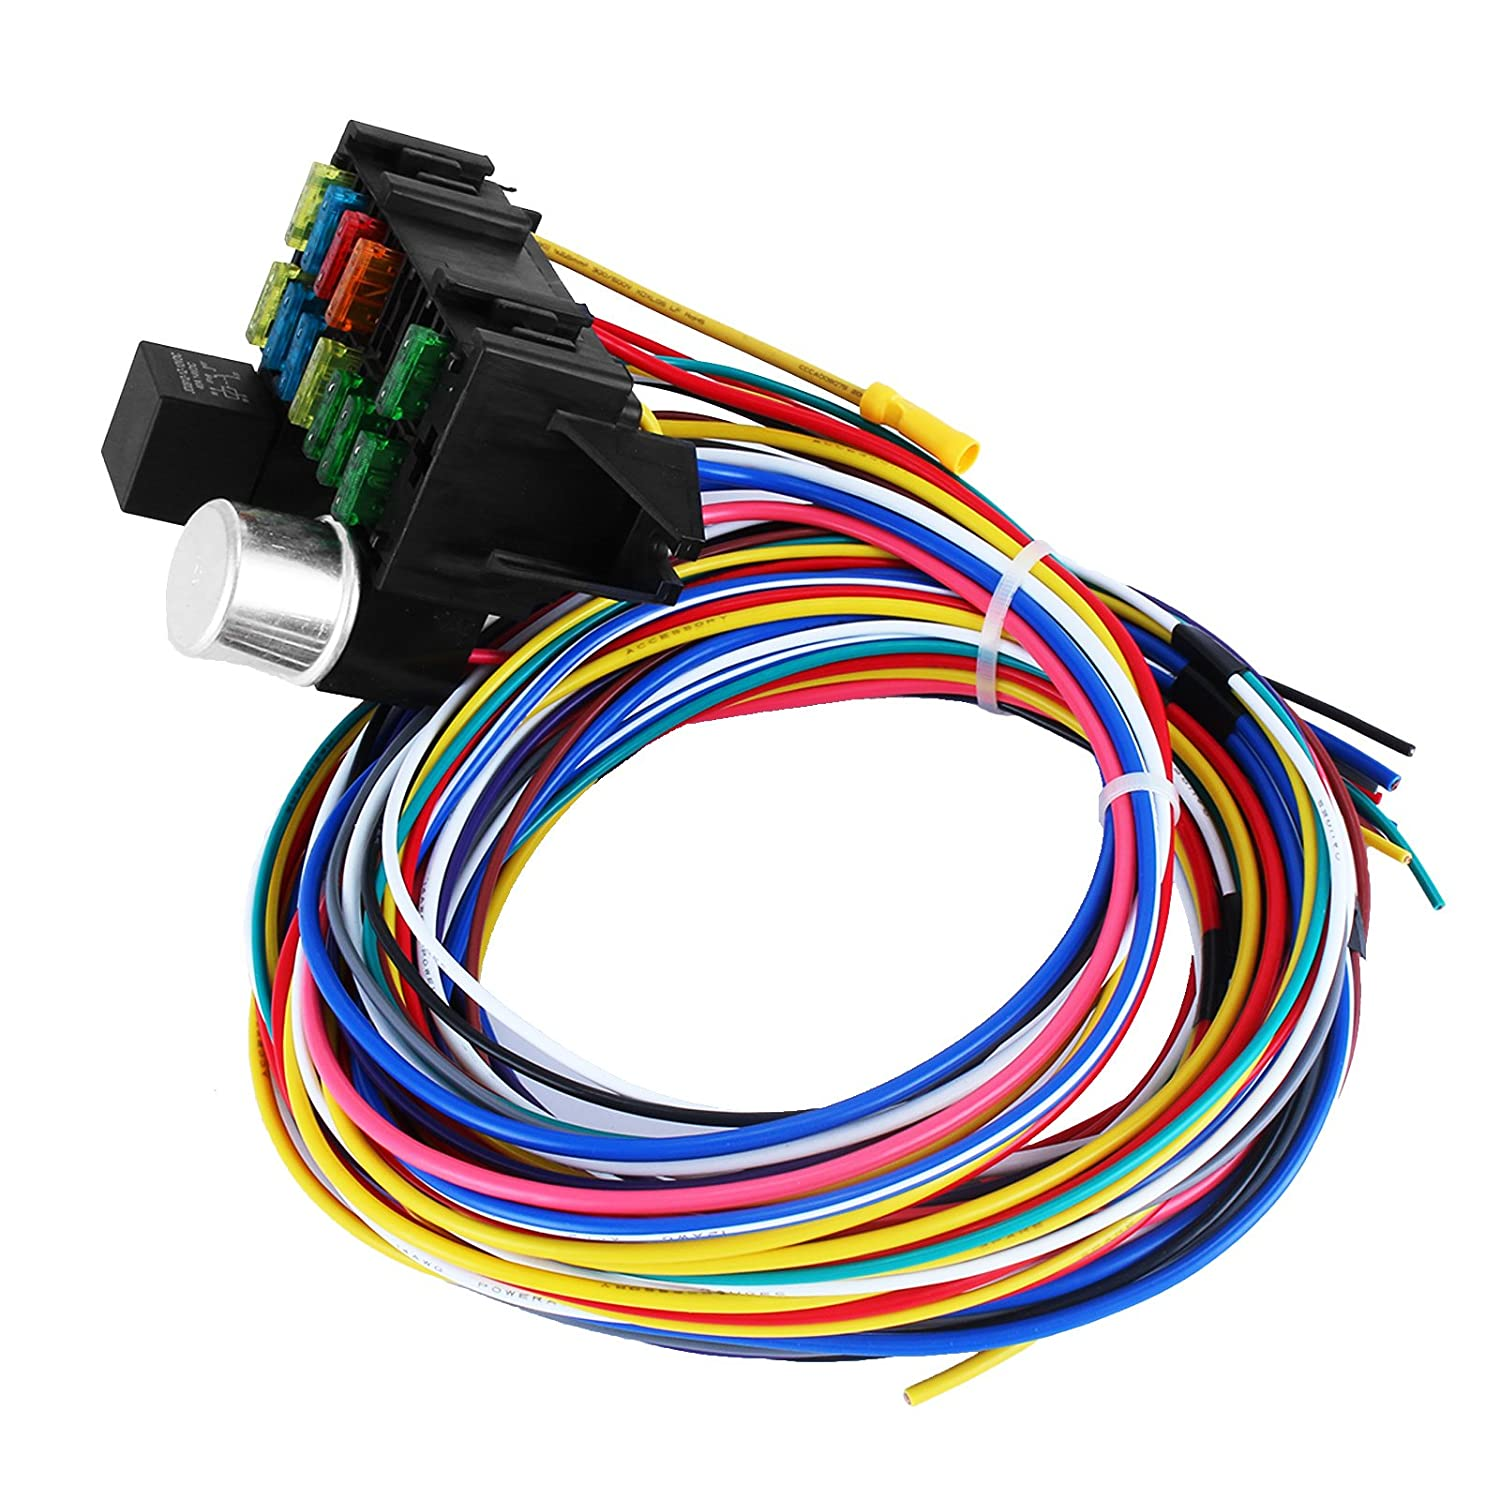 Mophorn 12 Circuit Wiring Harness Fuses Universal Spdt Relay Here Is The Proper Way Wire Street Rod Muscle Car Hot Automotive